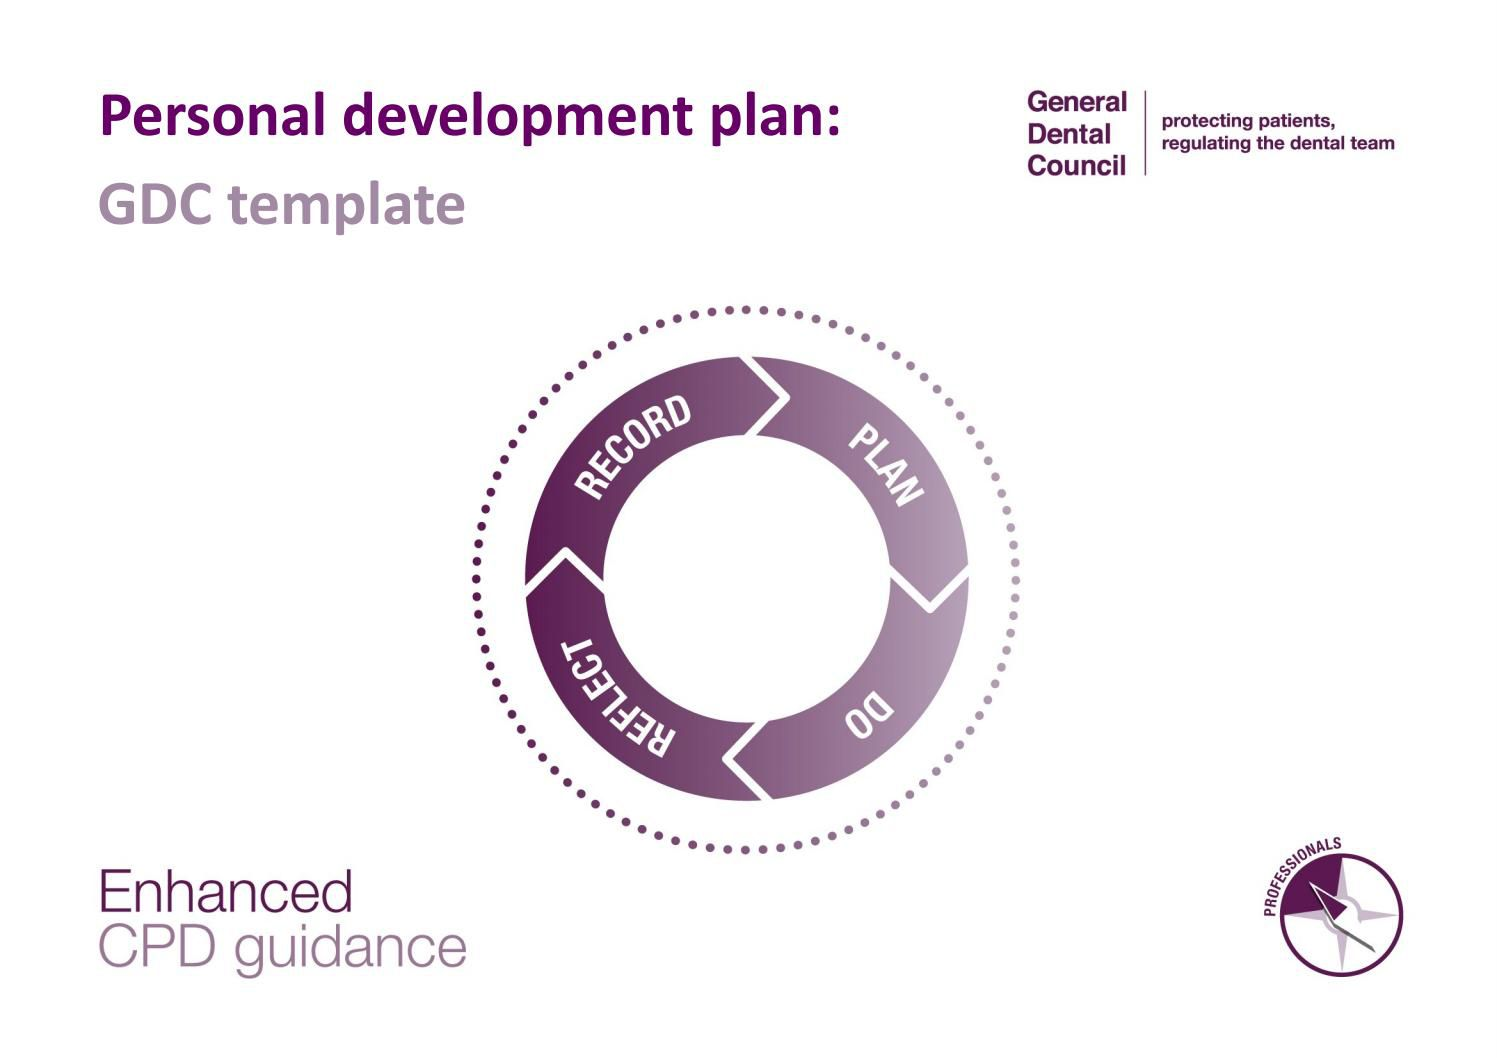 004 Excellent Personal Development Plan Template Gdc Highest Quality  FreeFull